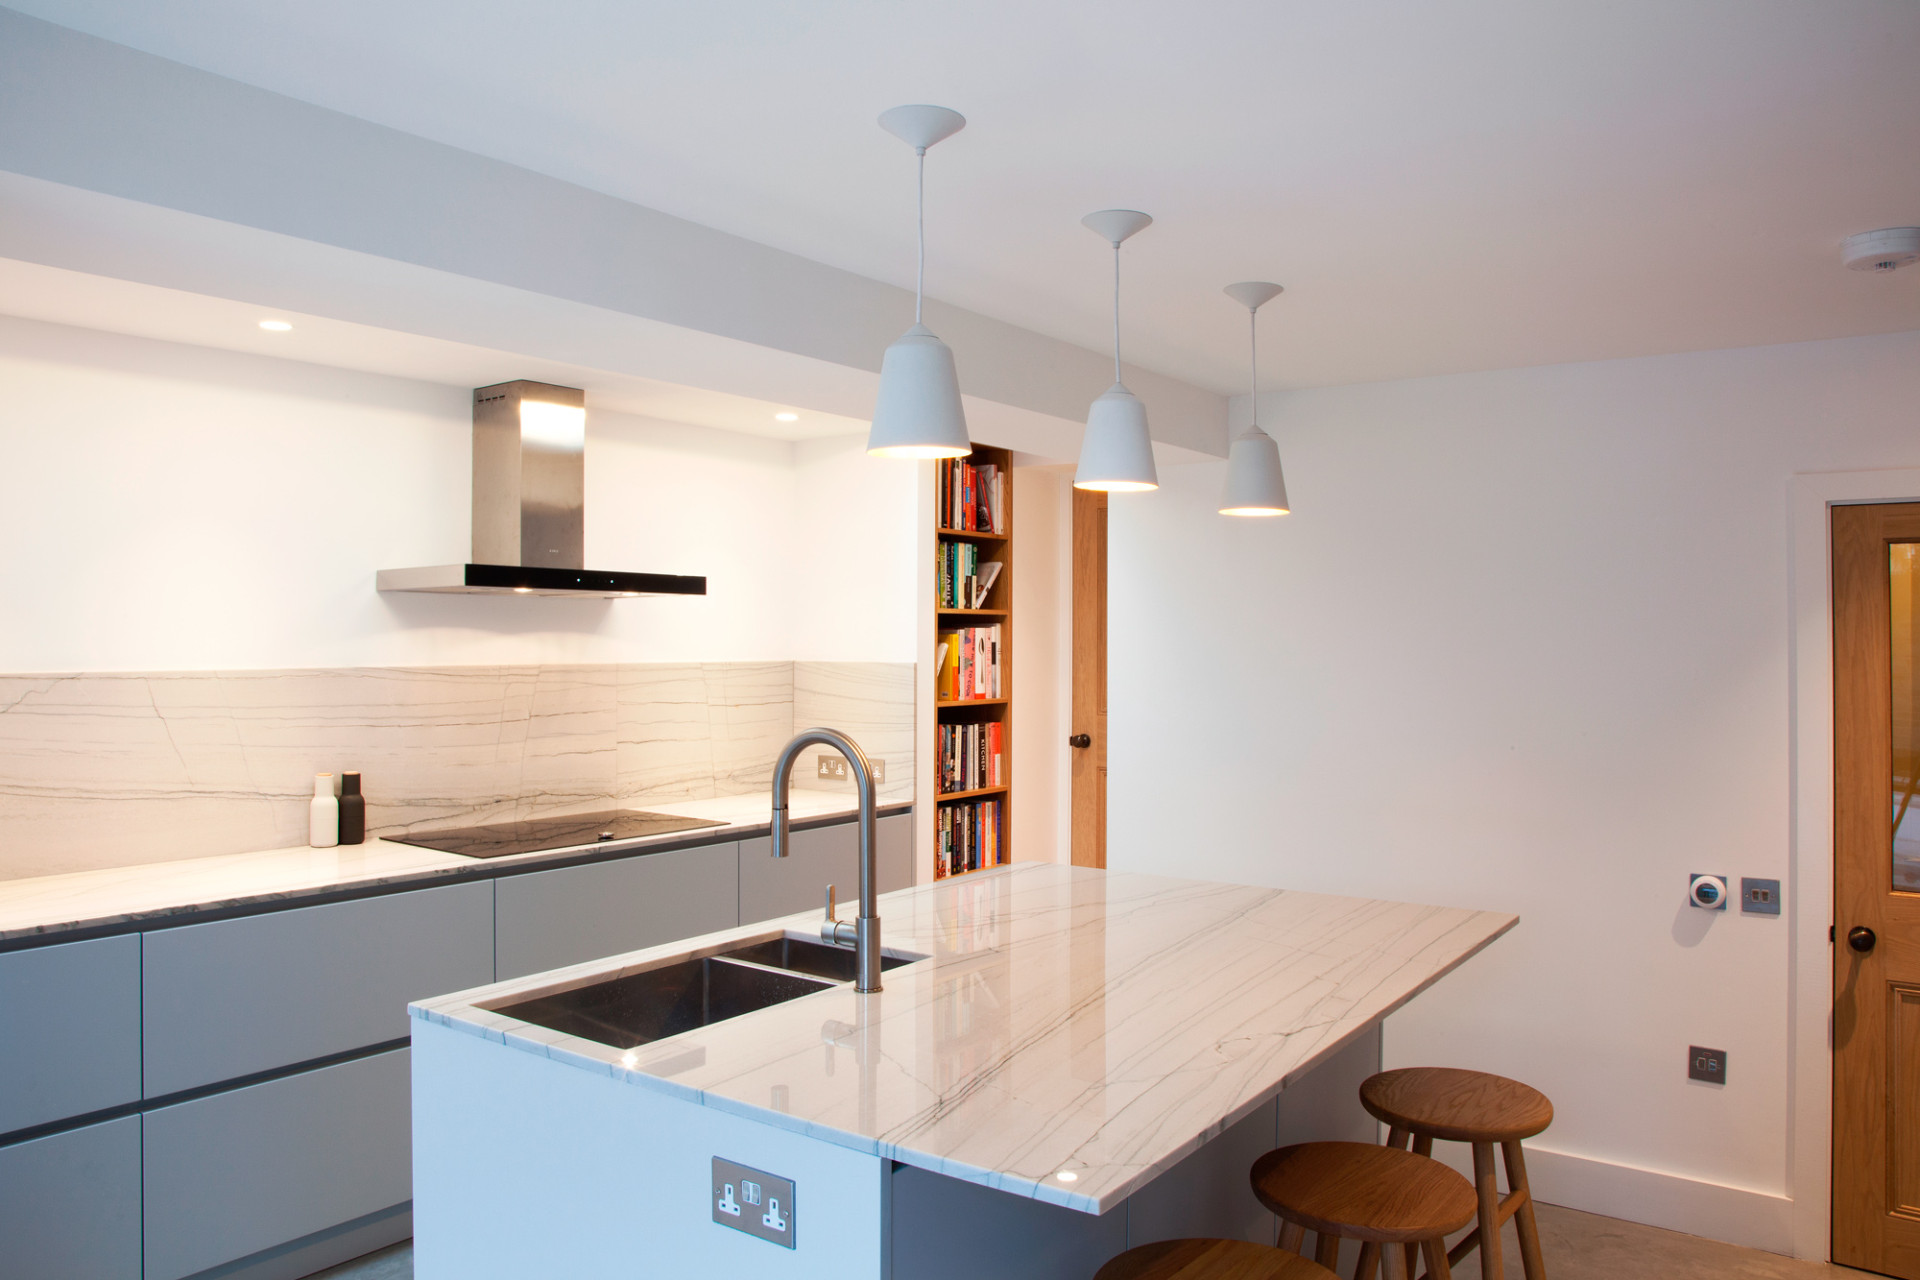 Whittaker Parsons Earlsfield Extension